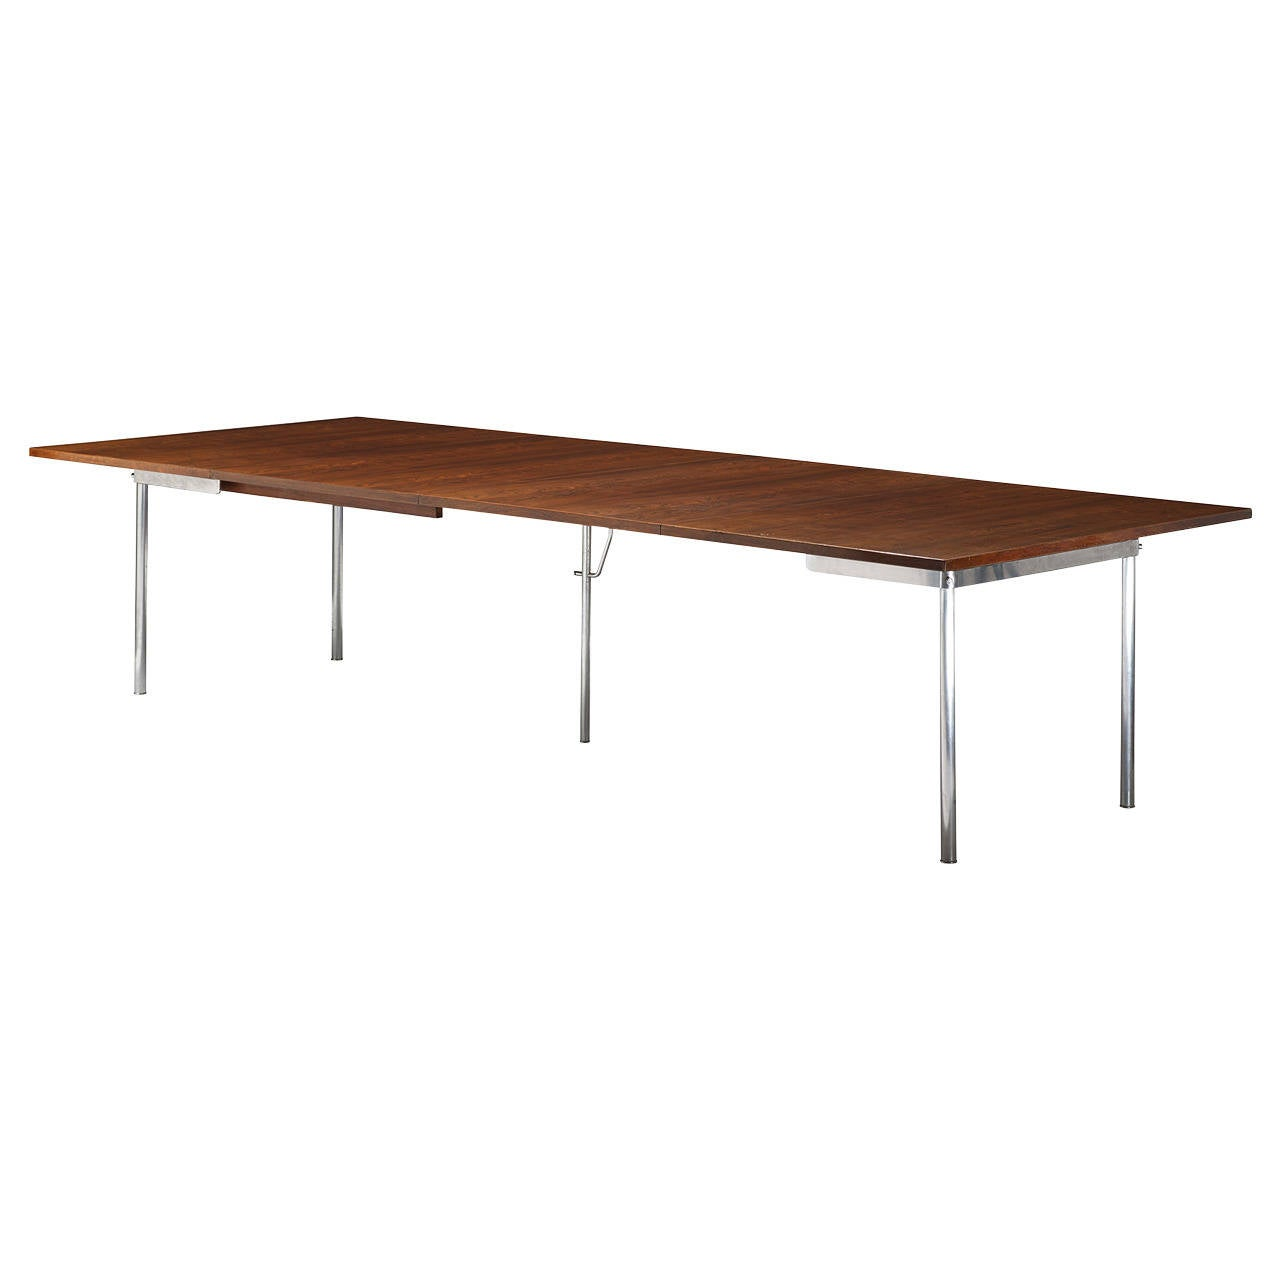 Extension dining table model at321 by hans wegner for andreas tuck at 1stdibs - Extension dining tables small spaces model ...